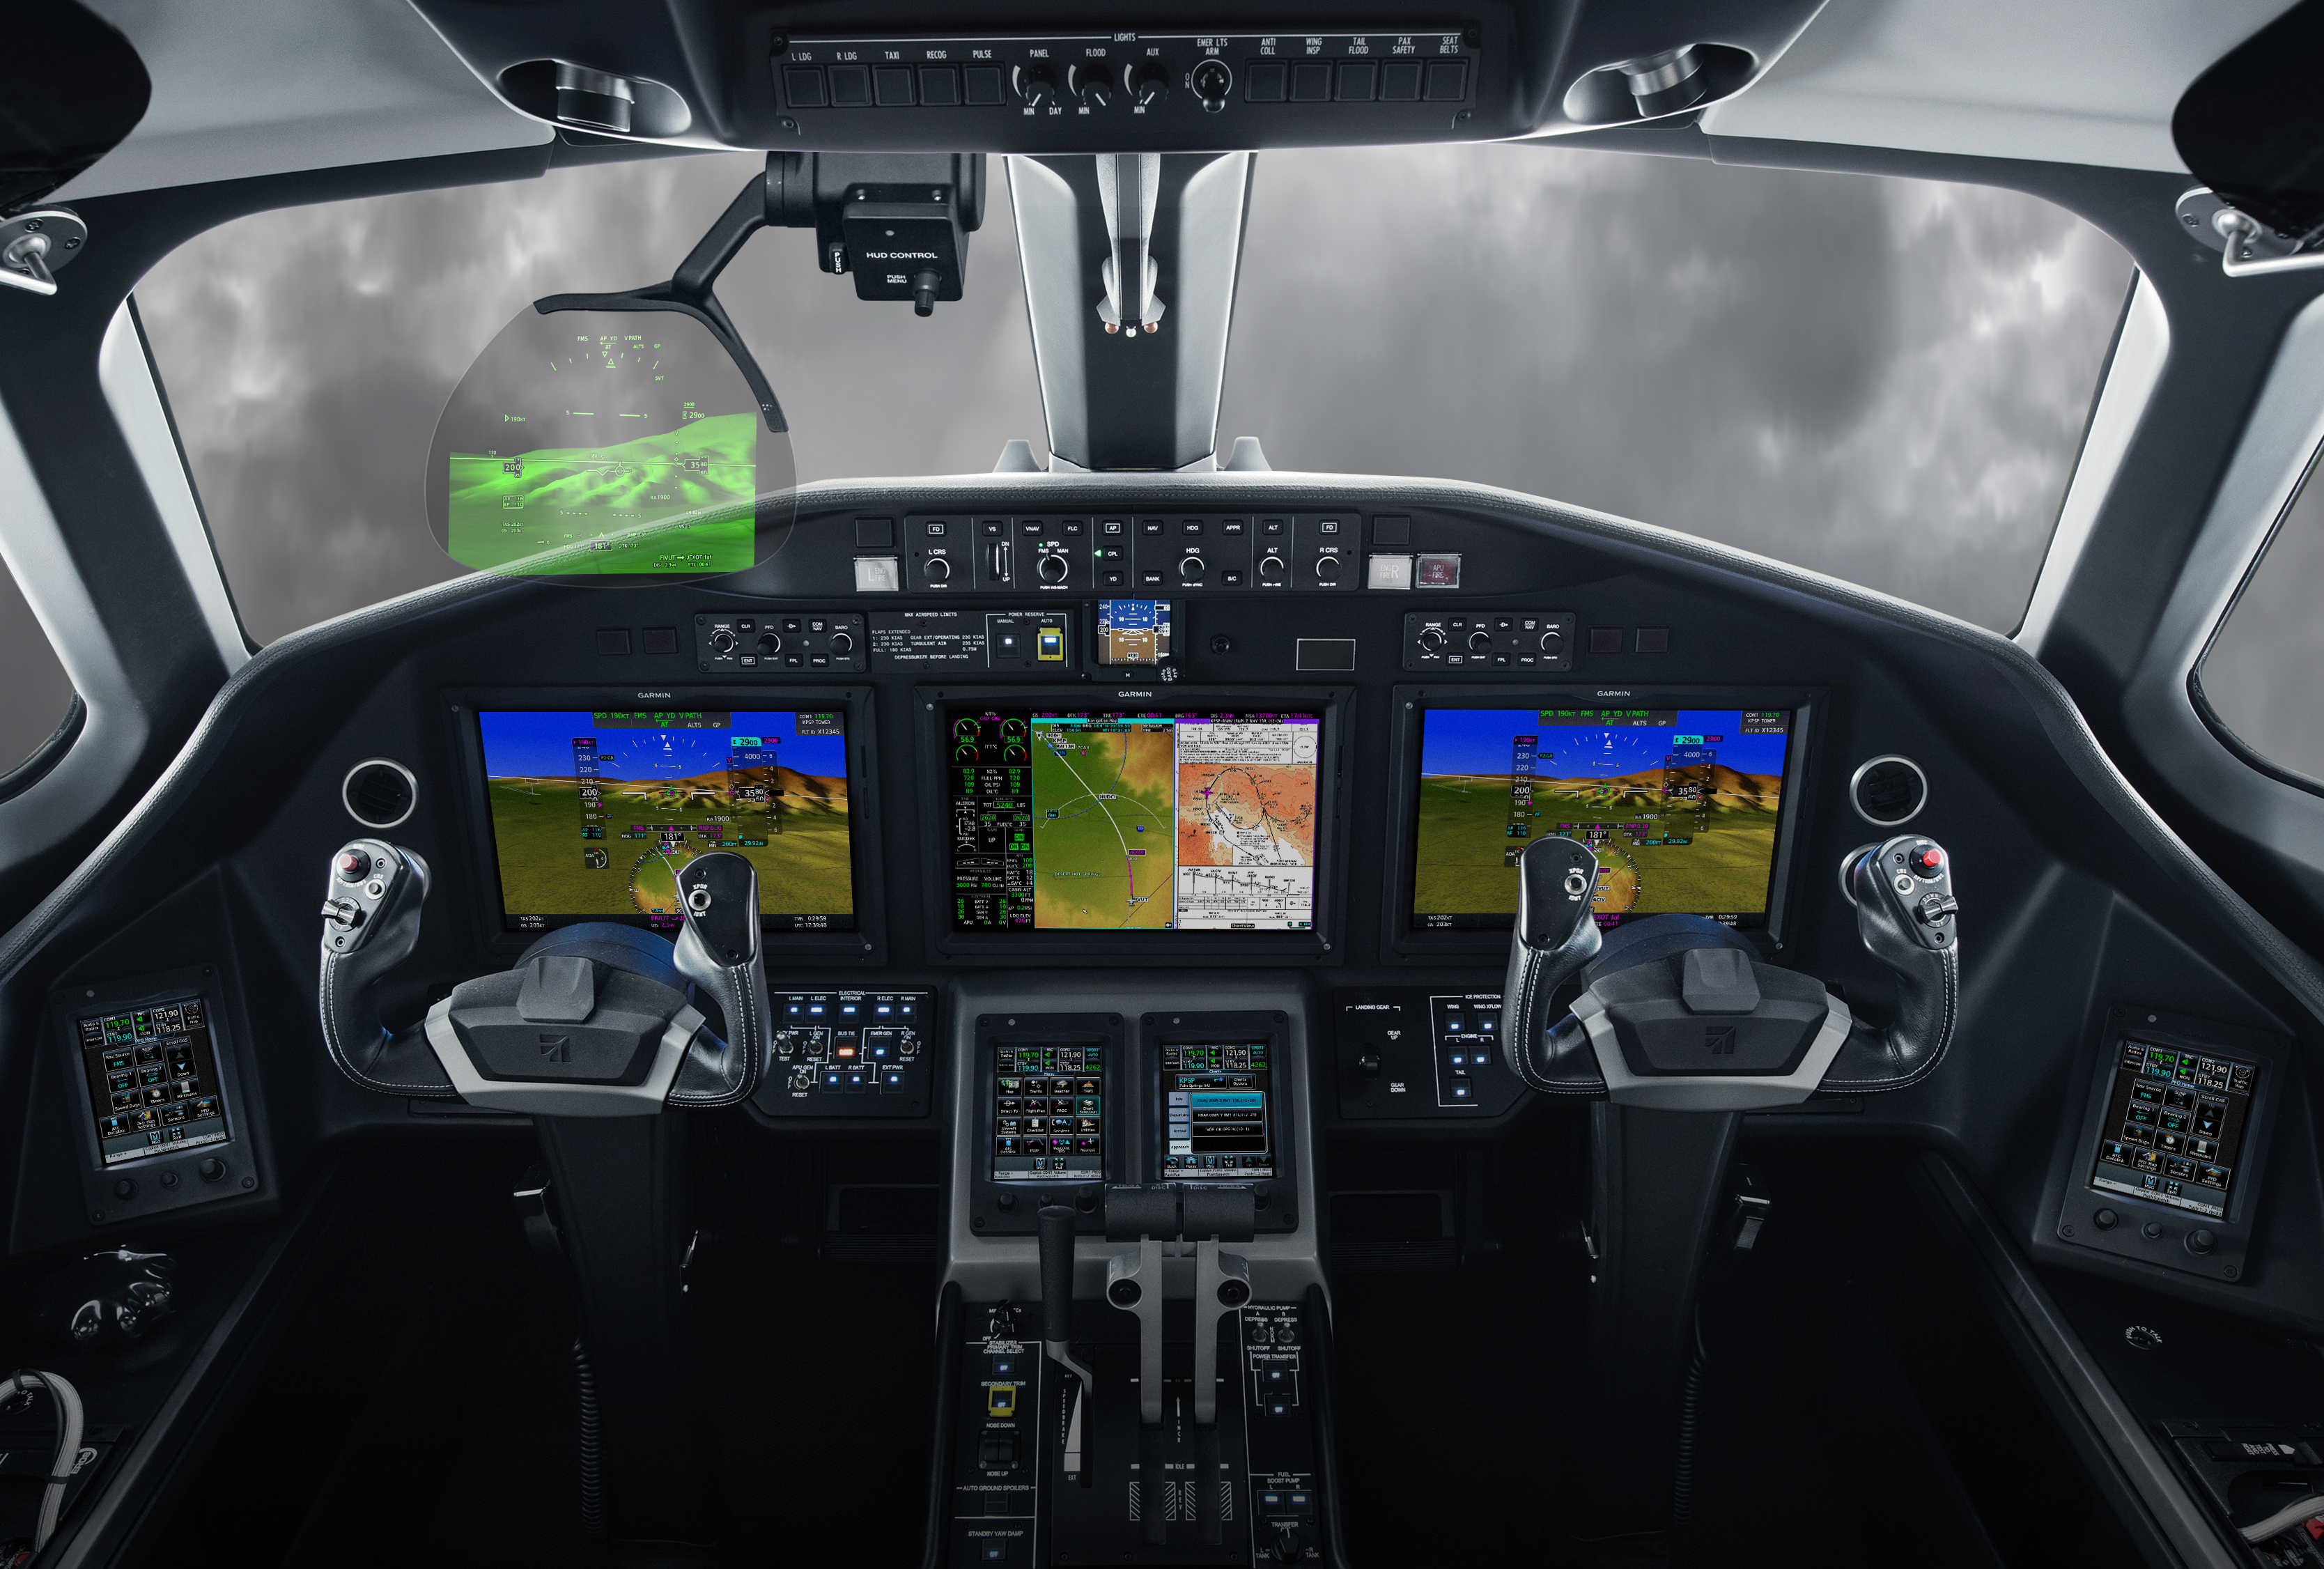 Introducing the Garmin® Head-up Display (GHD) system for